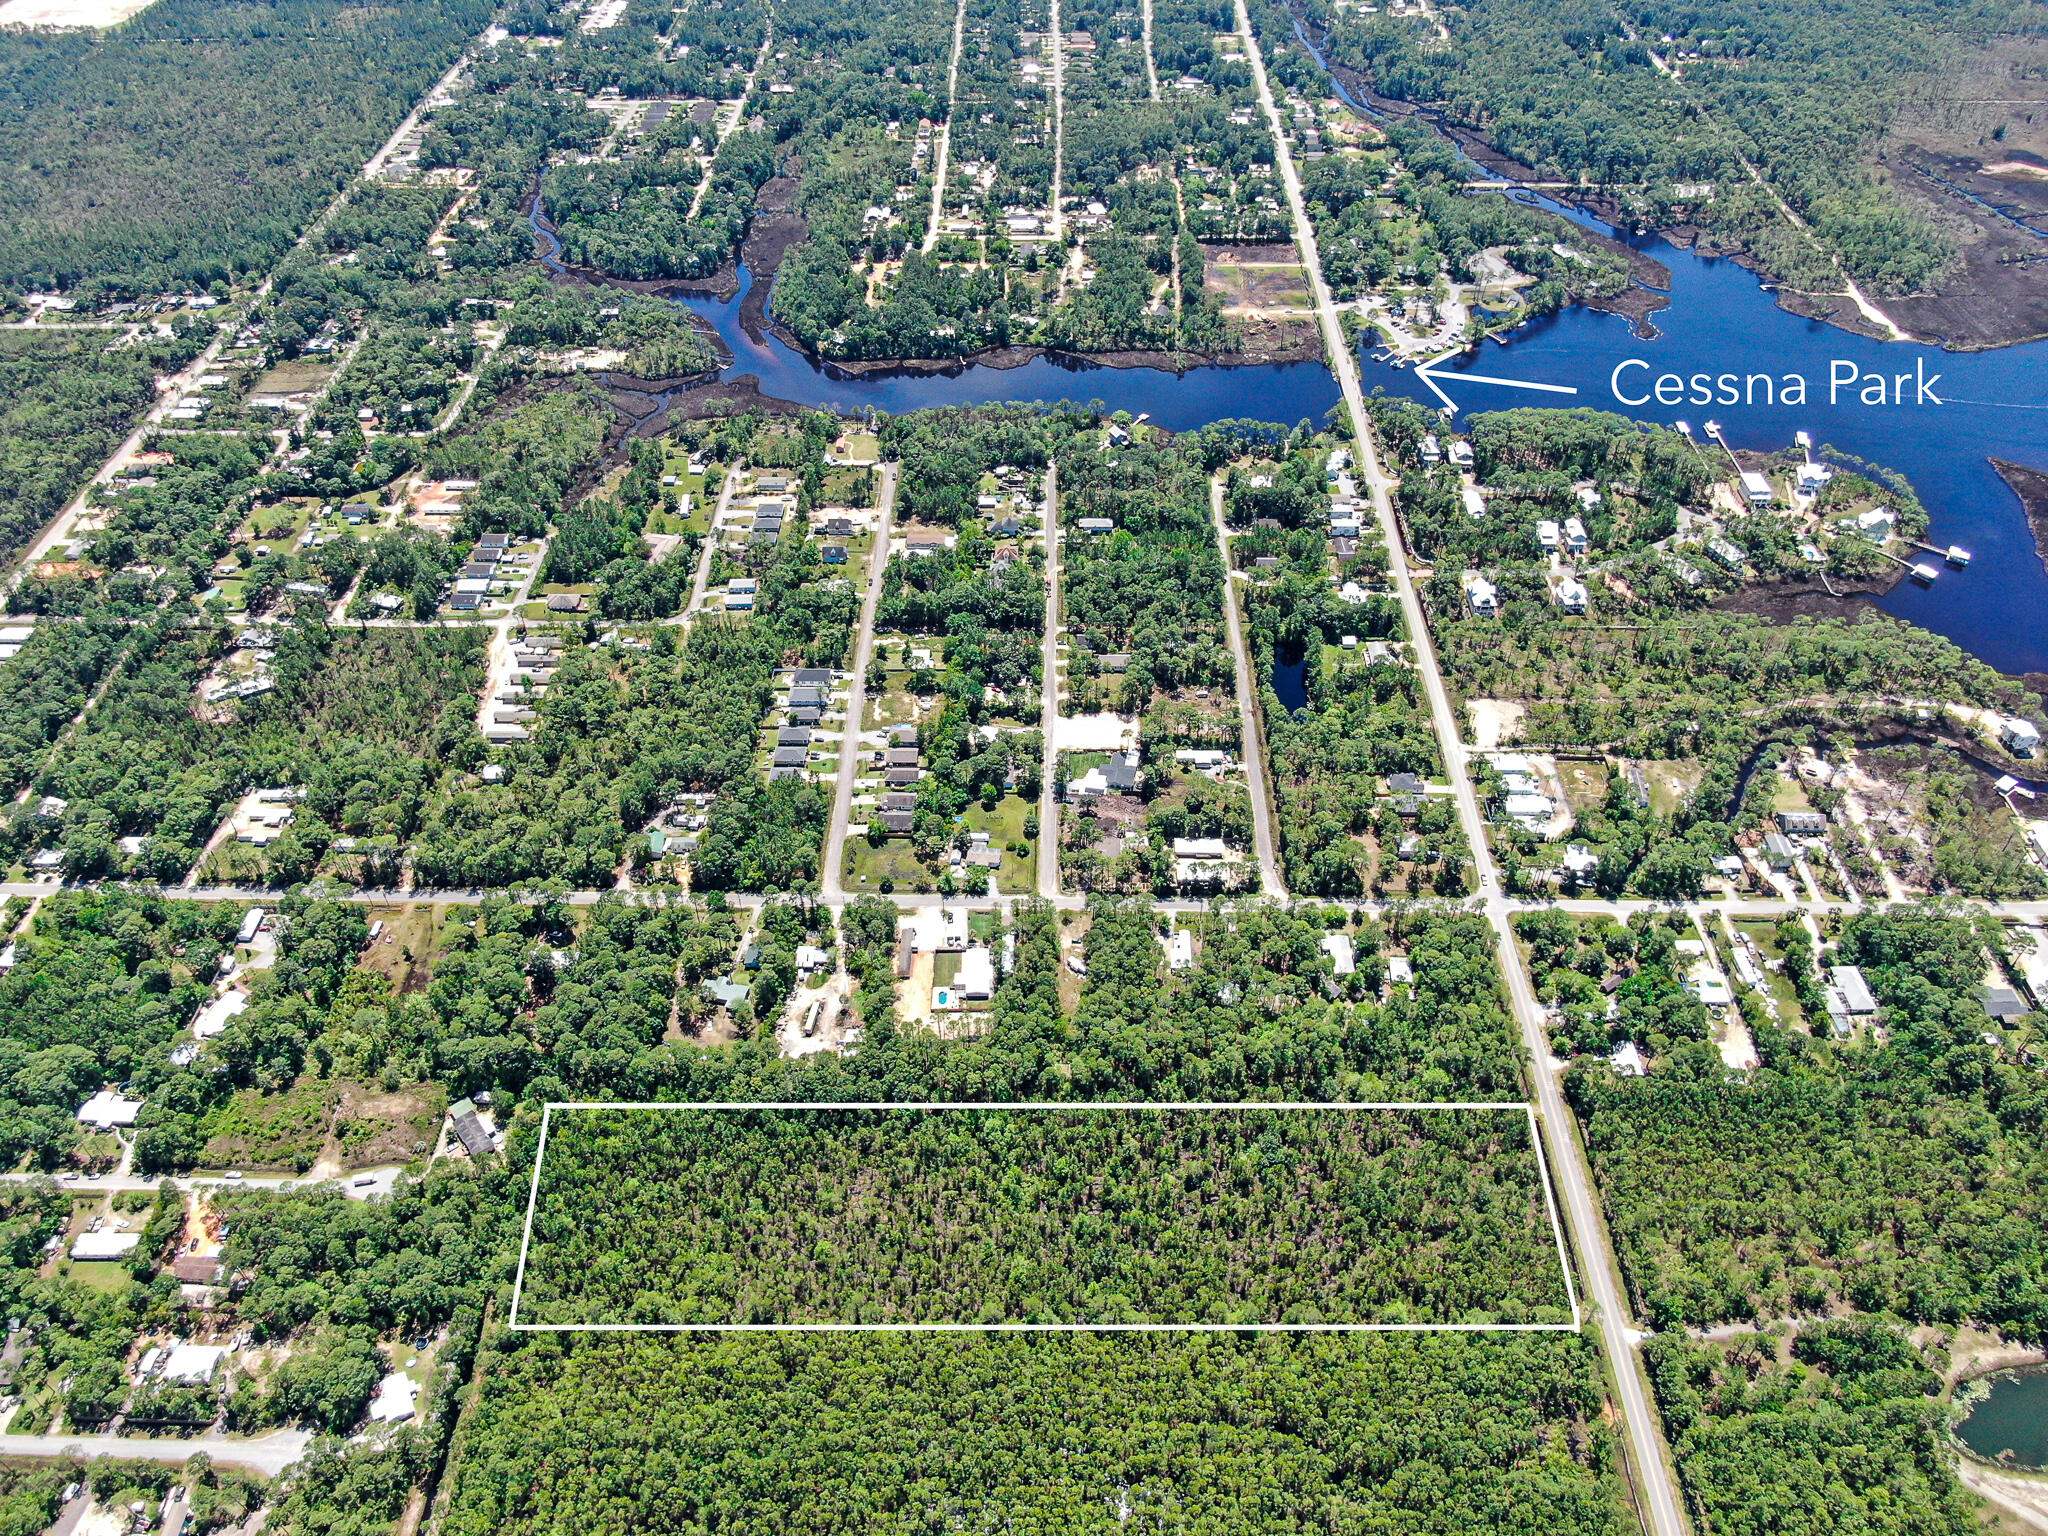 This 9.75 acre tract of wooded land has 330' of frontage on Hwy 393 North that is less than a mile to the Choctahatchee Bay.  Property has uplands and some wetlands to the rear.  Great opportunity for development and currently zoned Conservation/Residential, but potential for low density dwellings with zoning and land use change.  Buyer to verify lot dimensions, restrictions, utilities and zoning requirements.